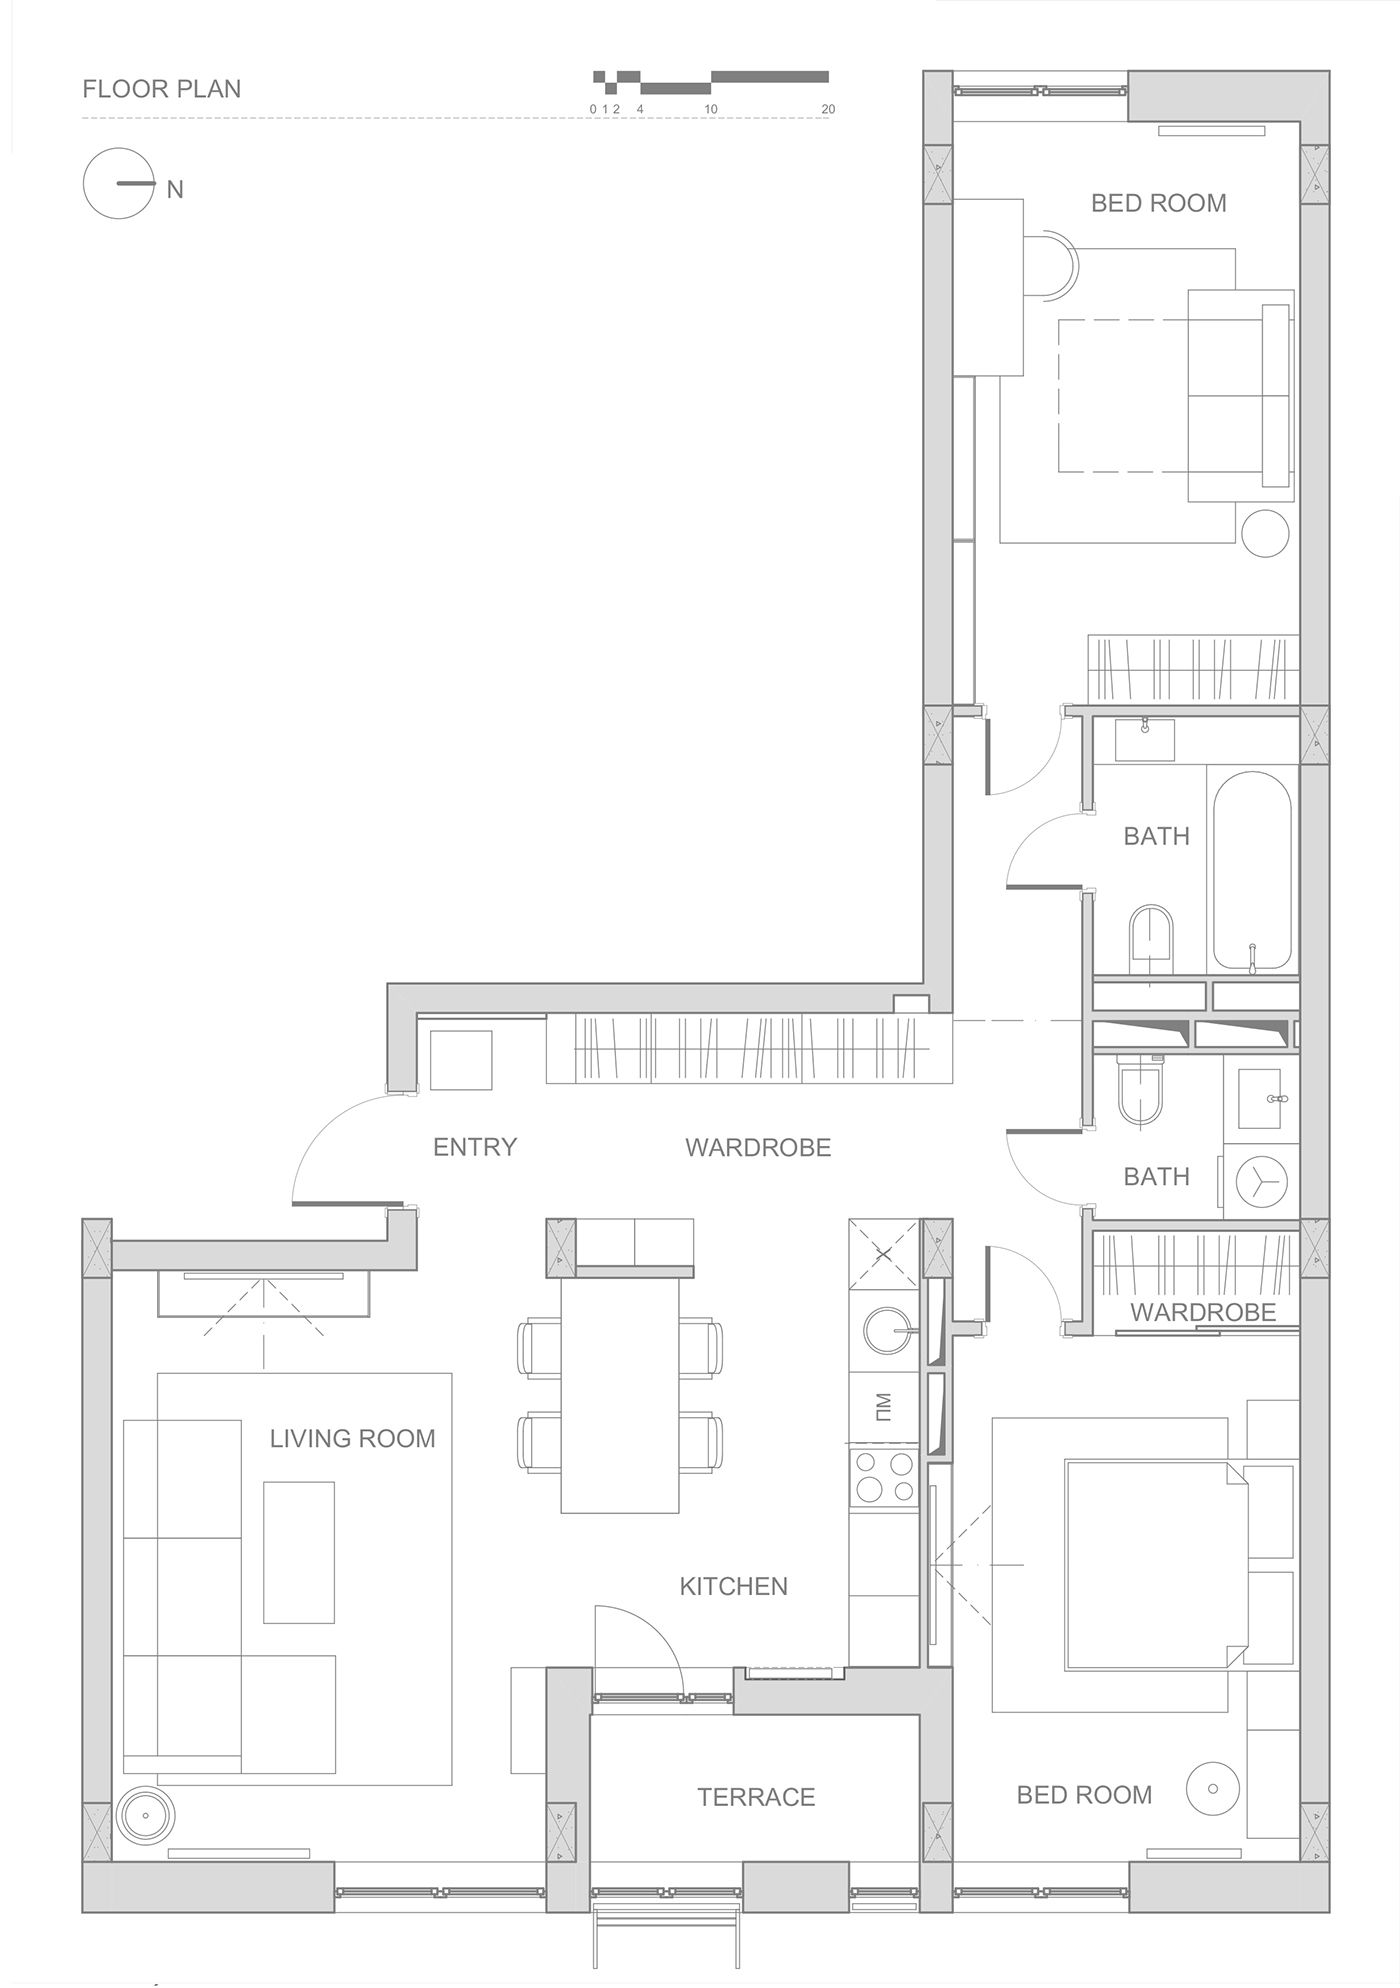 Double Bedroom L Shaped Home Design 2 Examples With Floor Plans Apartment Floor Plans Floor Plan Design L Shaped House Plans